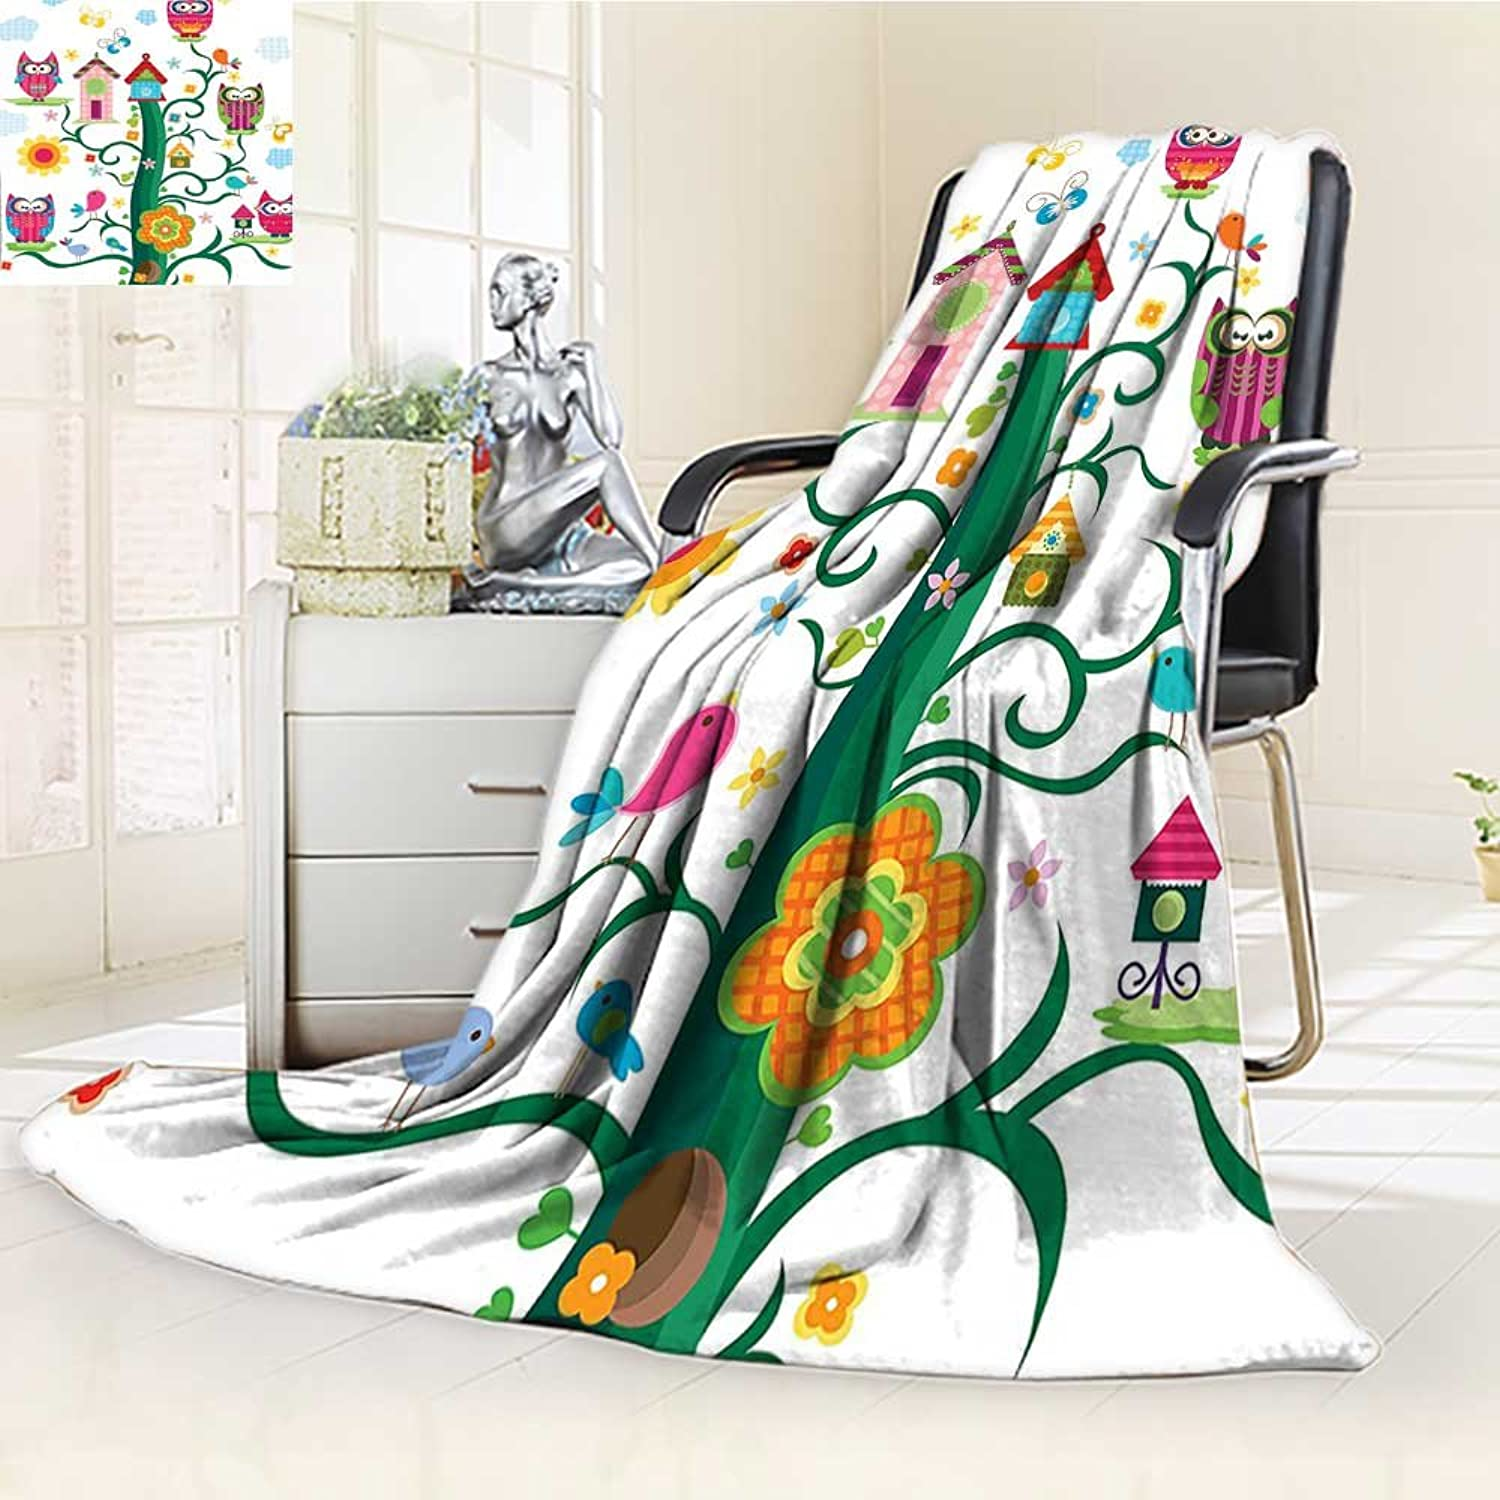 AmaPark Digital Printing Blanket in The Tree with Crazy Eyes Dots in The Air Nocturnal Wise Mascot Summer Quilt Comforter